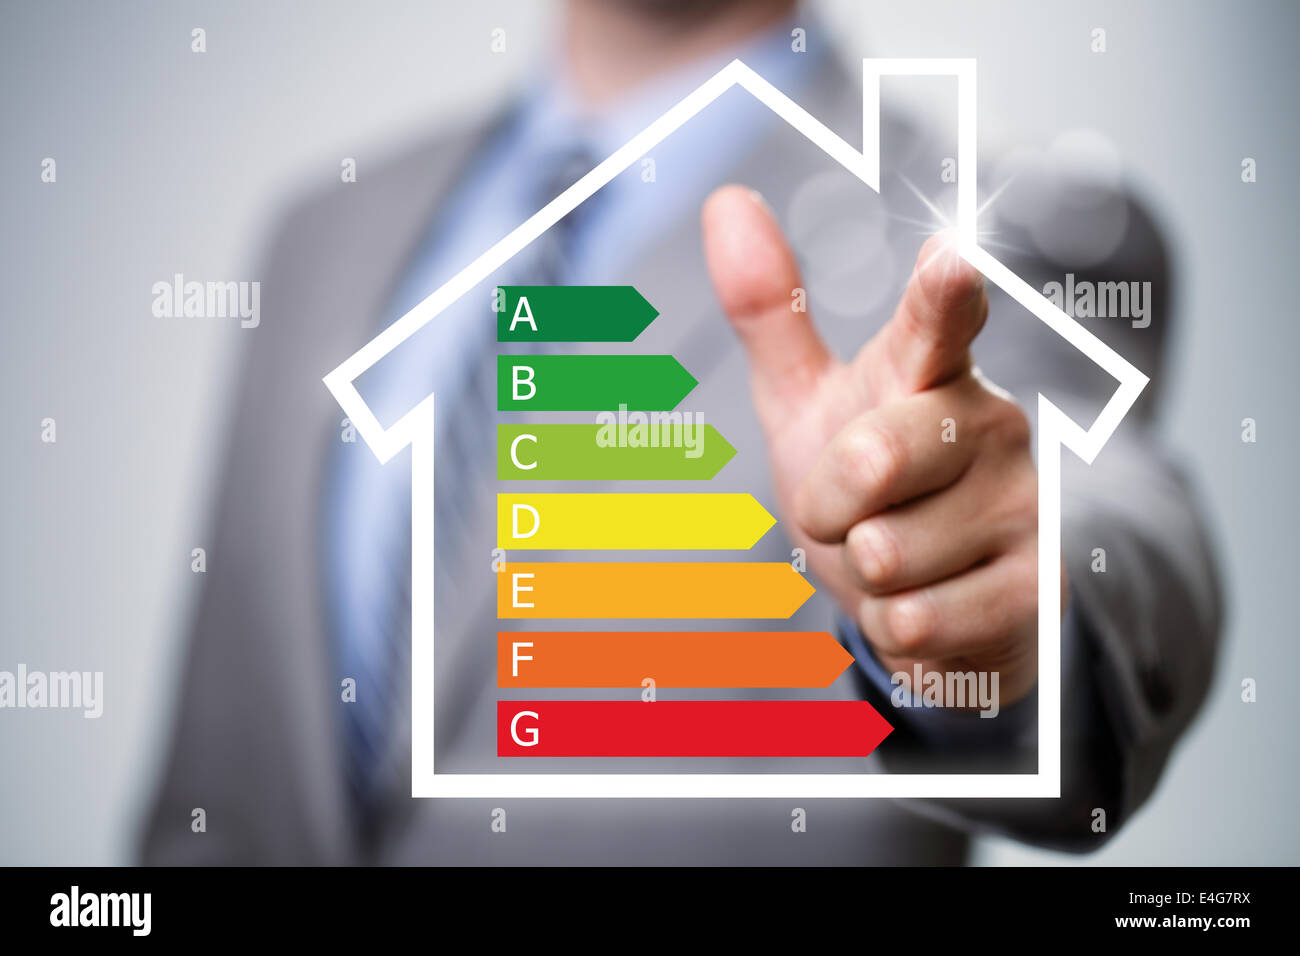 Energy efficiency in the home - Stock Image